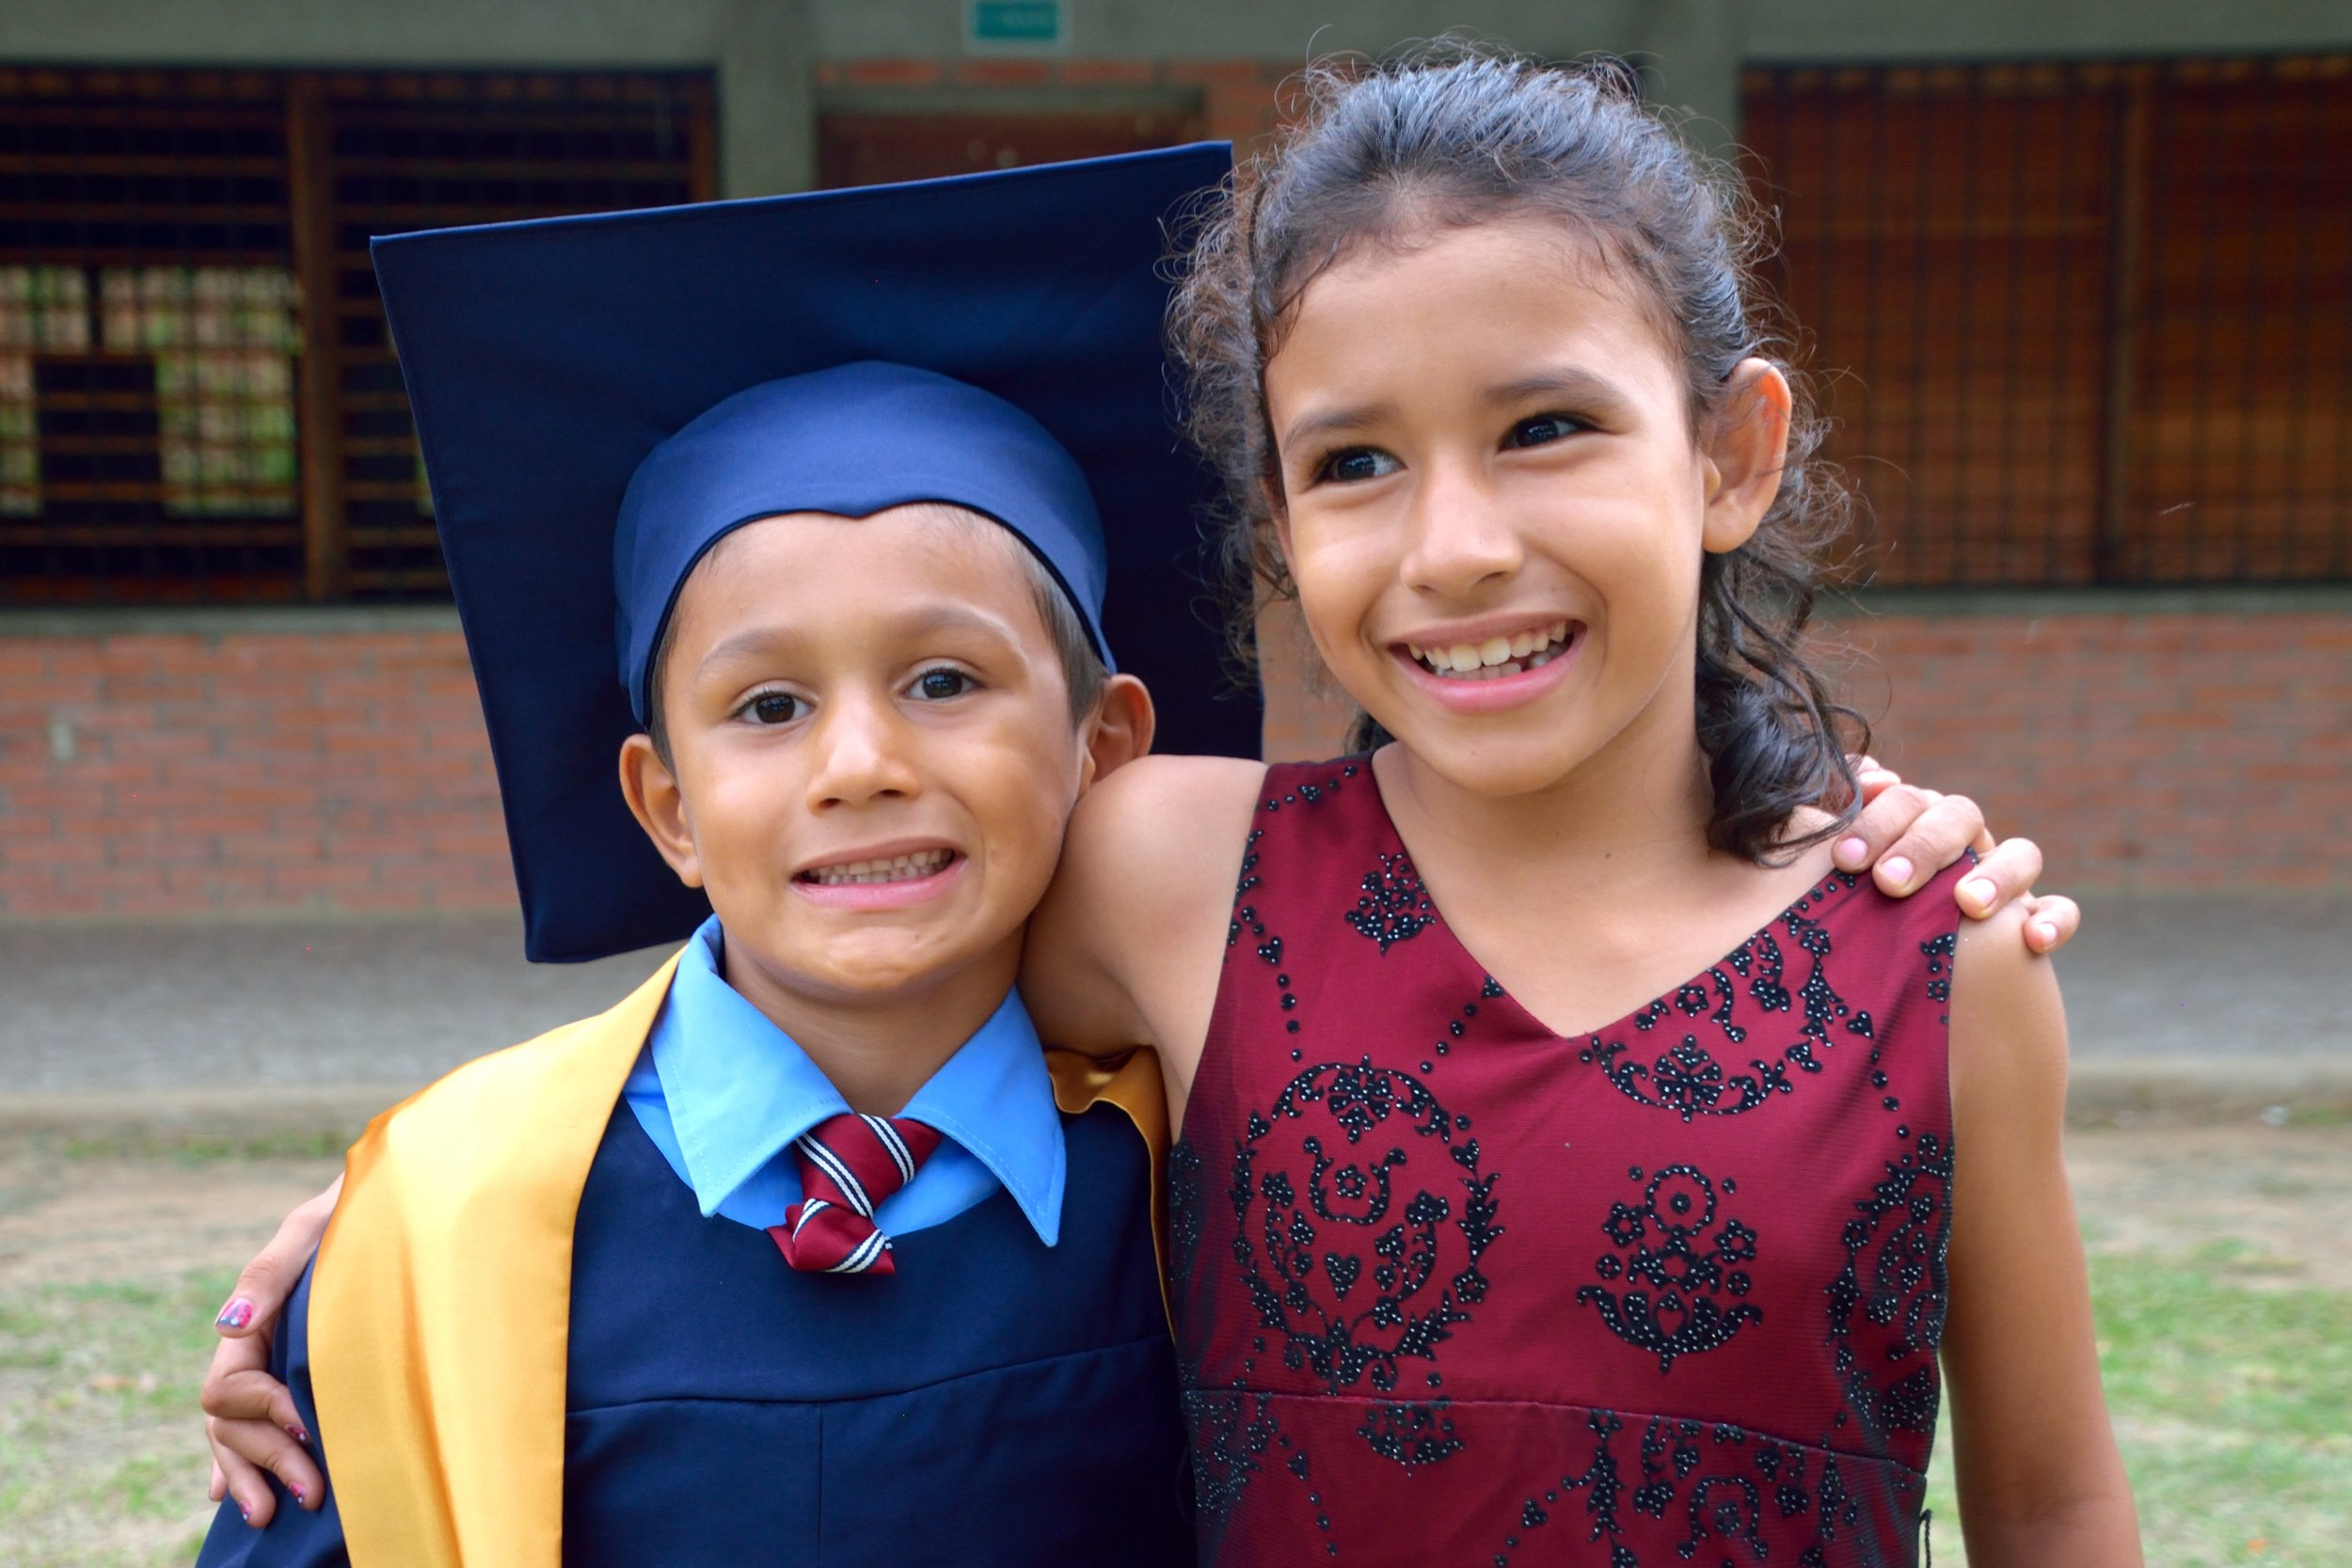 Joaquin and his sister, Felipa,* celebrating his graduation from 'Prep.'